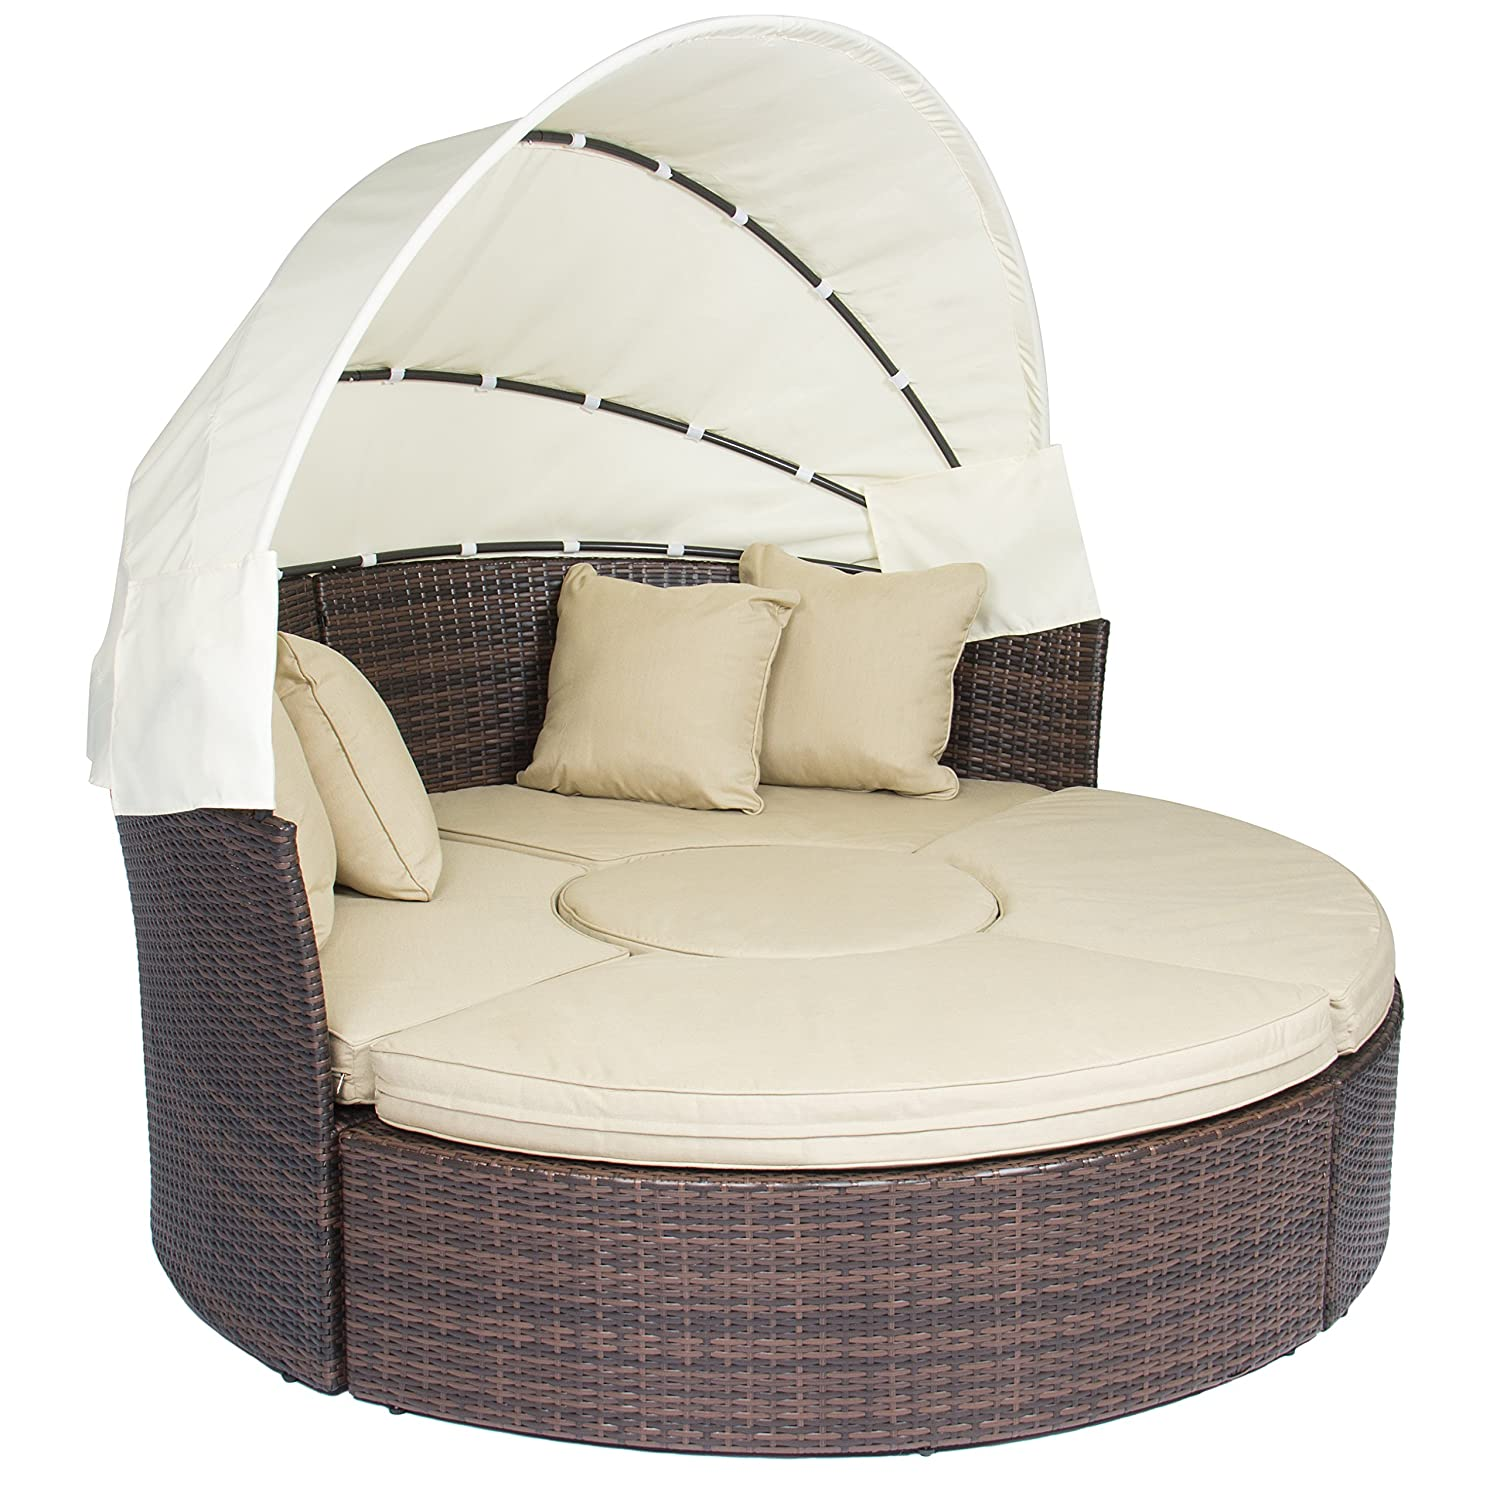 Amazon.com  Outdoor Patio Sofa Furniture Round Retractable Canopy Daybed Brown Wicker Rattan  Garden u0026 Outdoor  sc 1 st  Amazon.com : patio bed with canopy - memphite.com